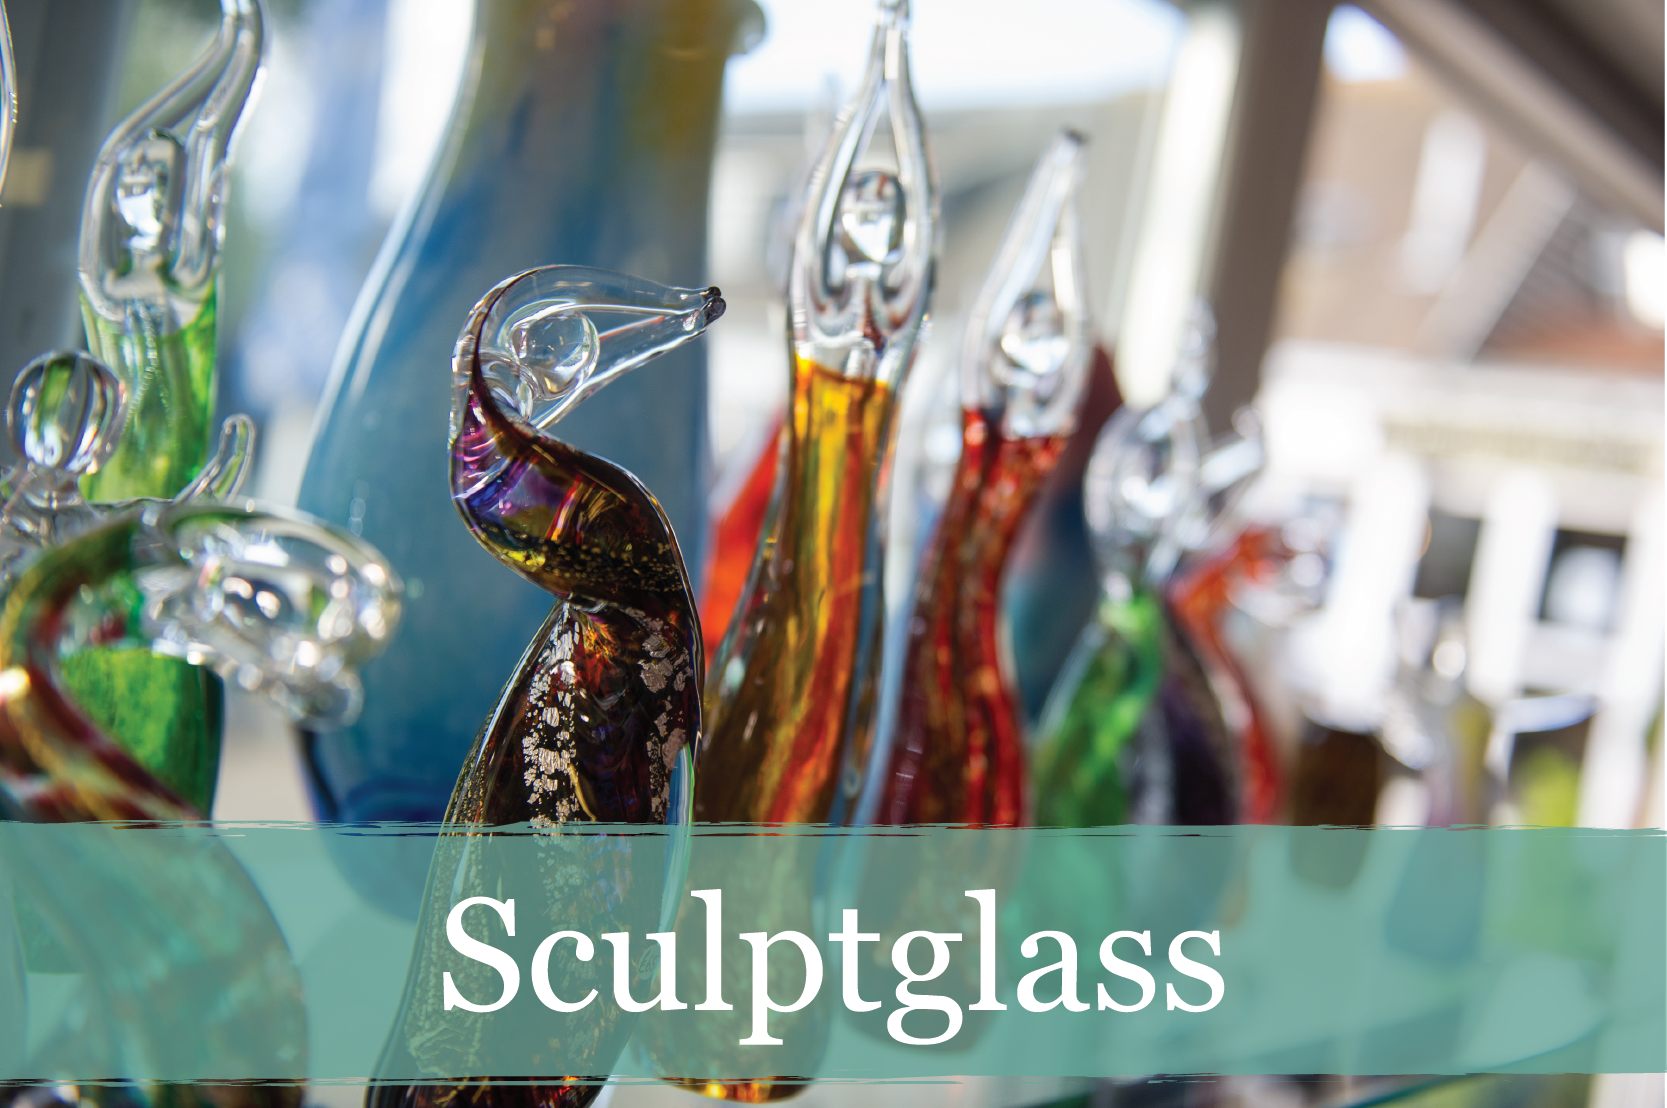 Crafts - Sculptglass